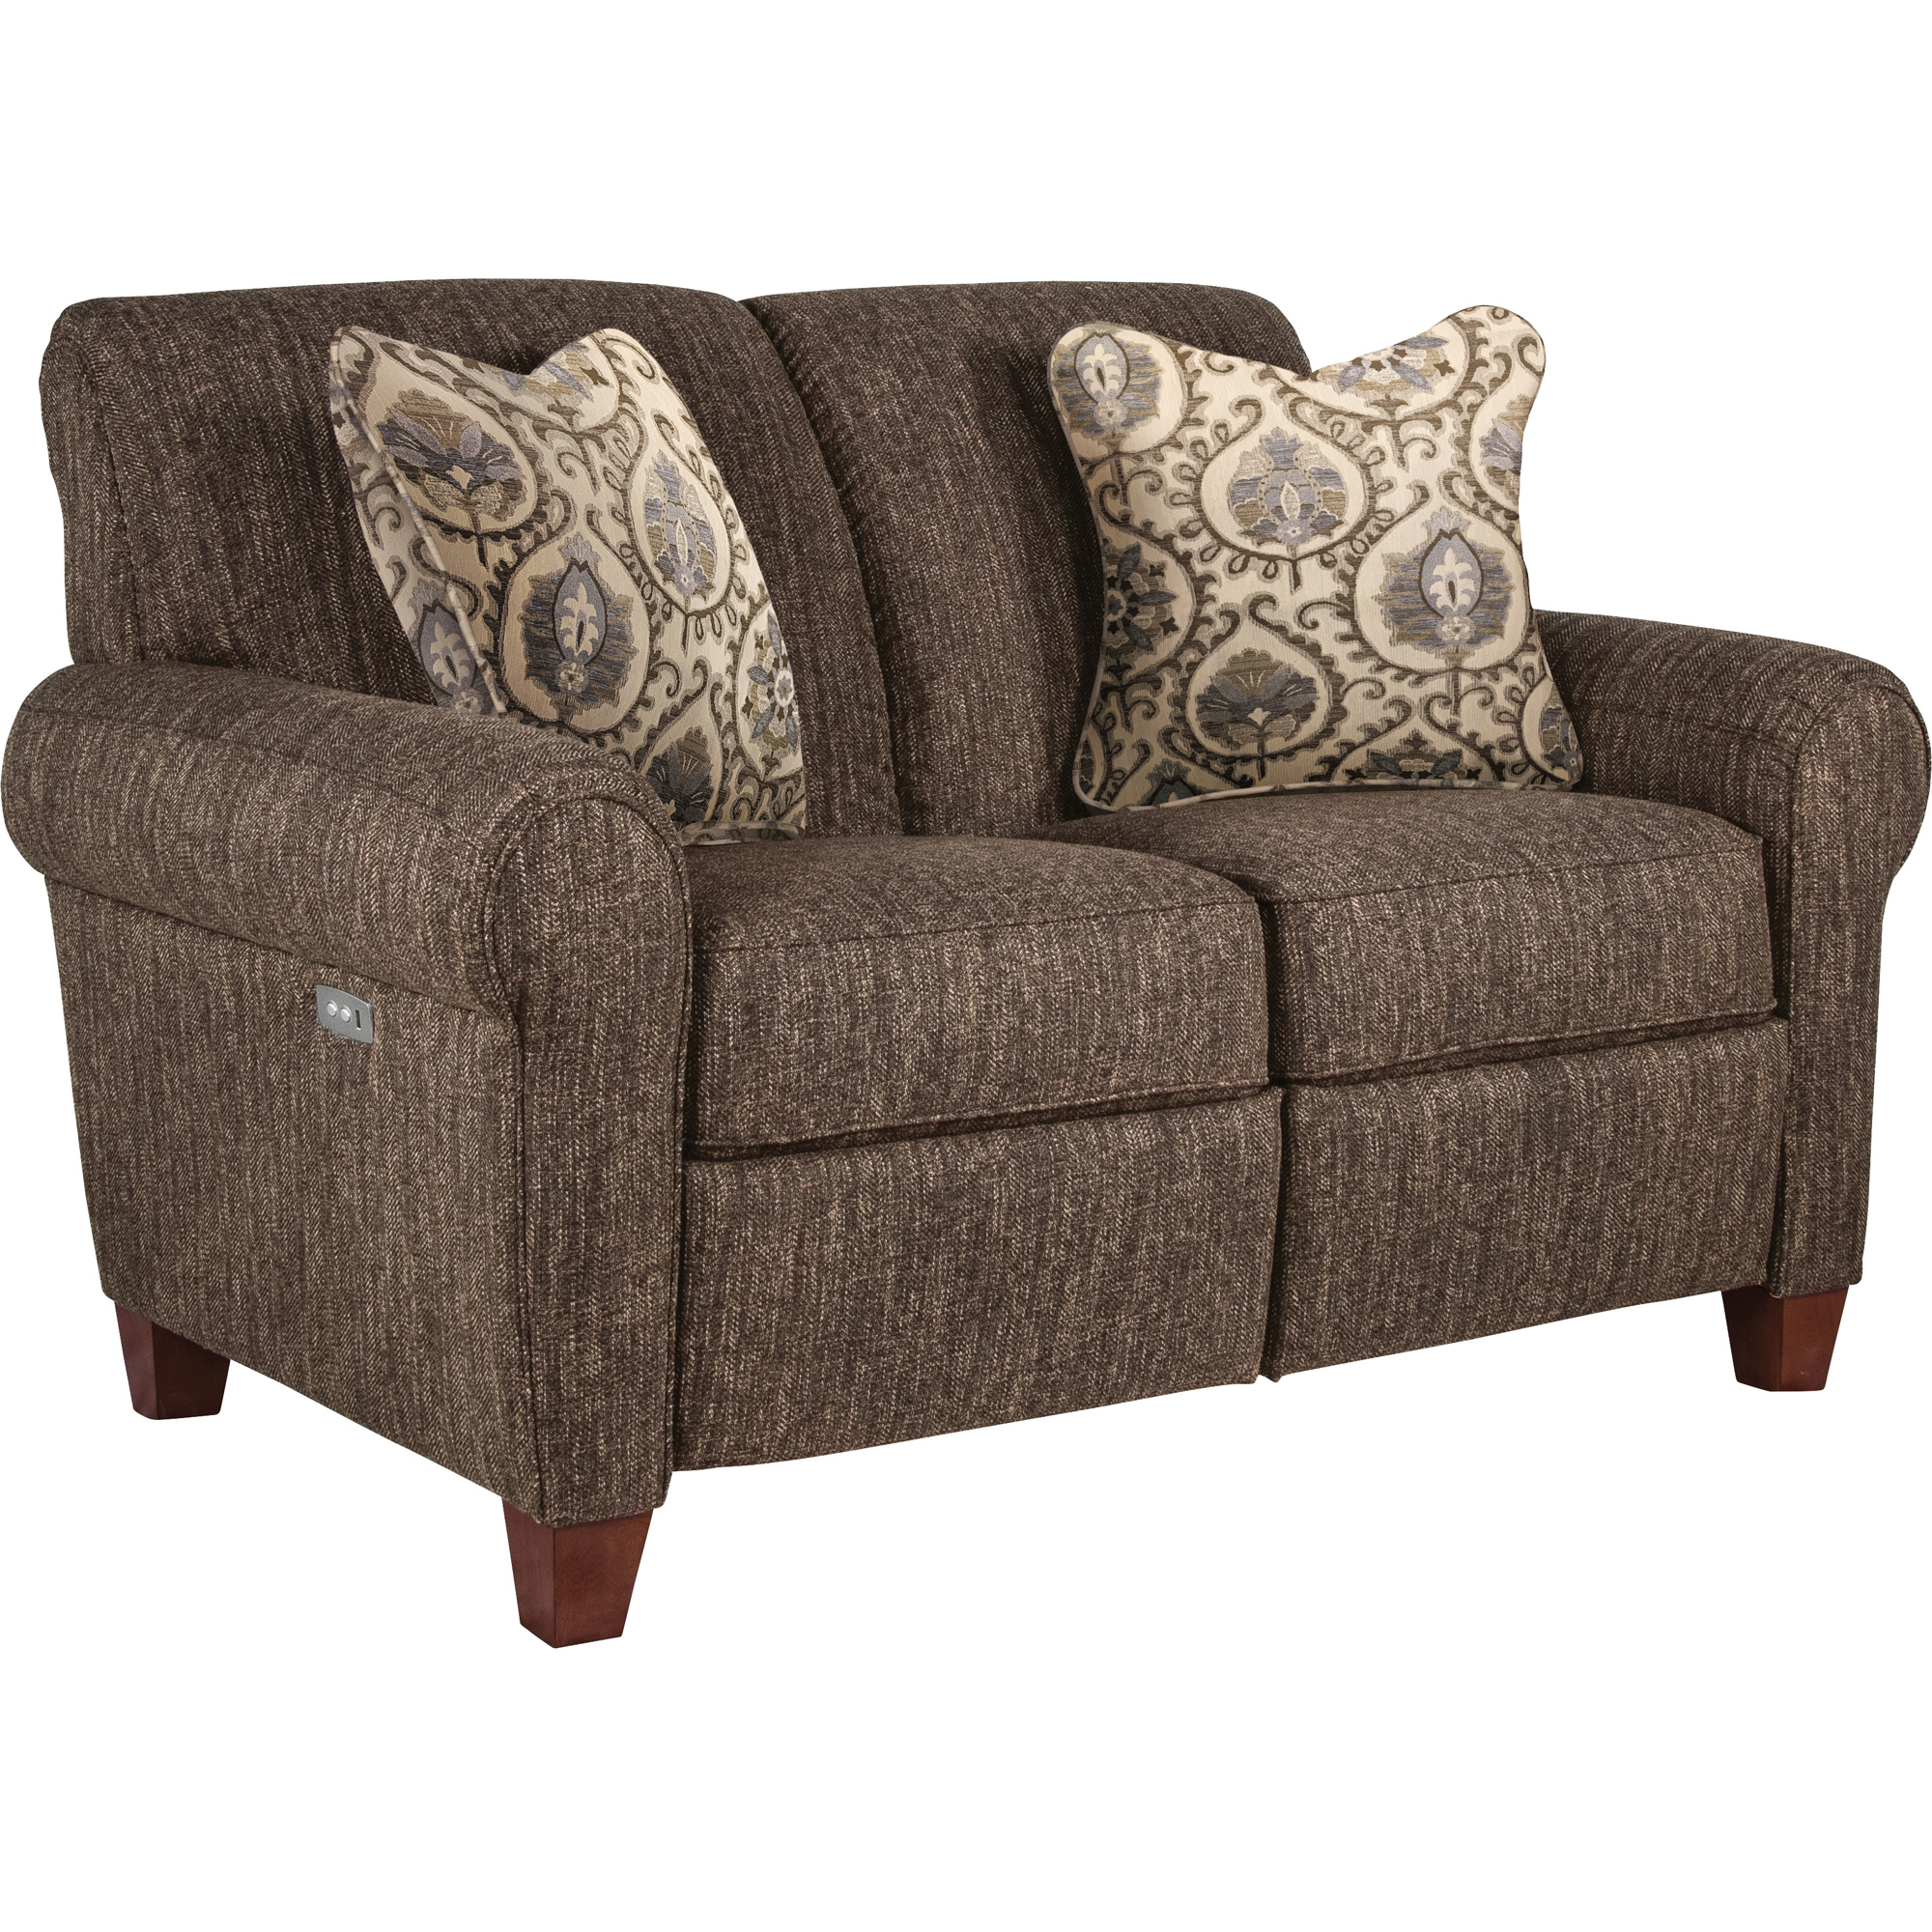 La-Z-Boy | Bennett Mocha Reclining Loveseat Sofa